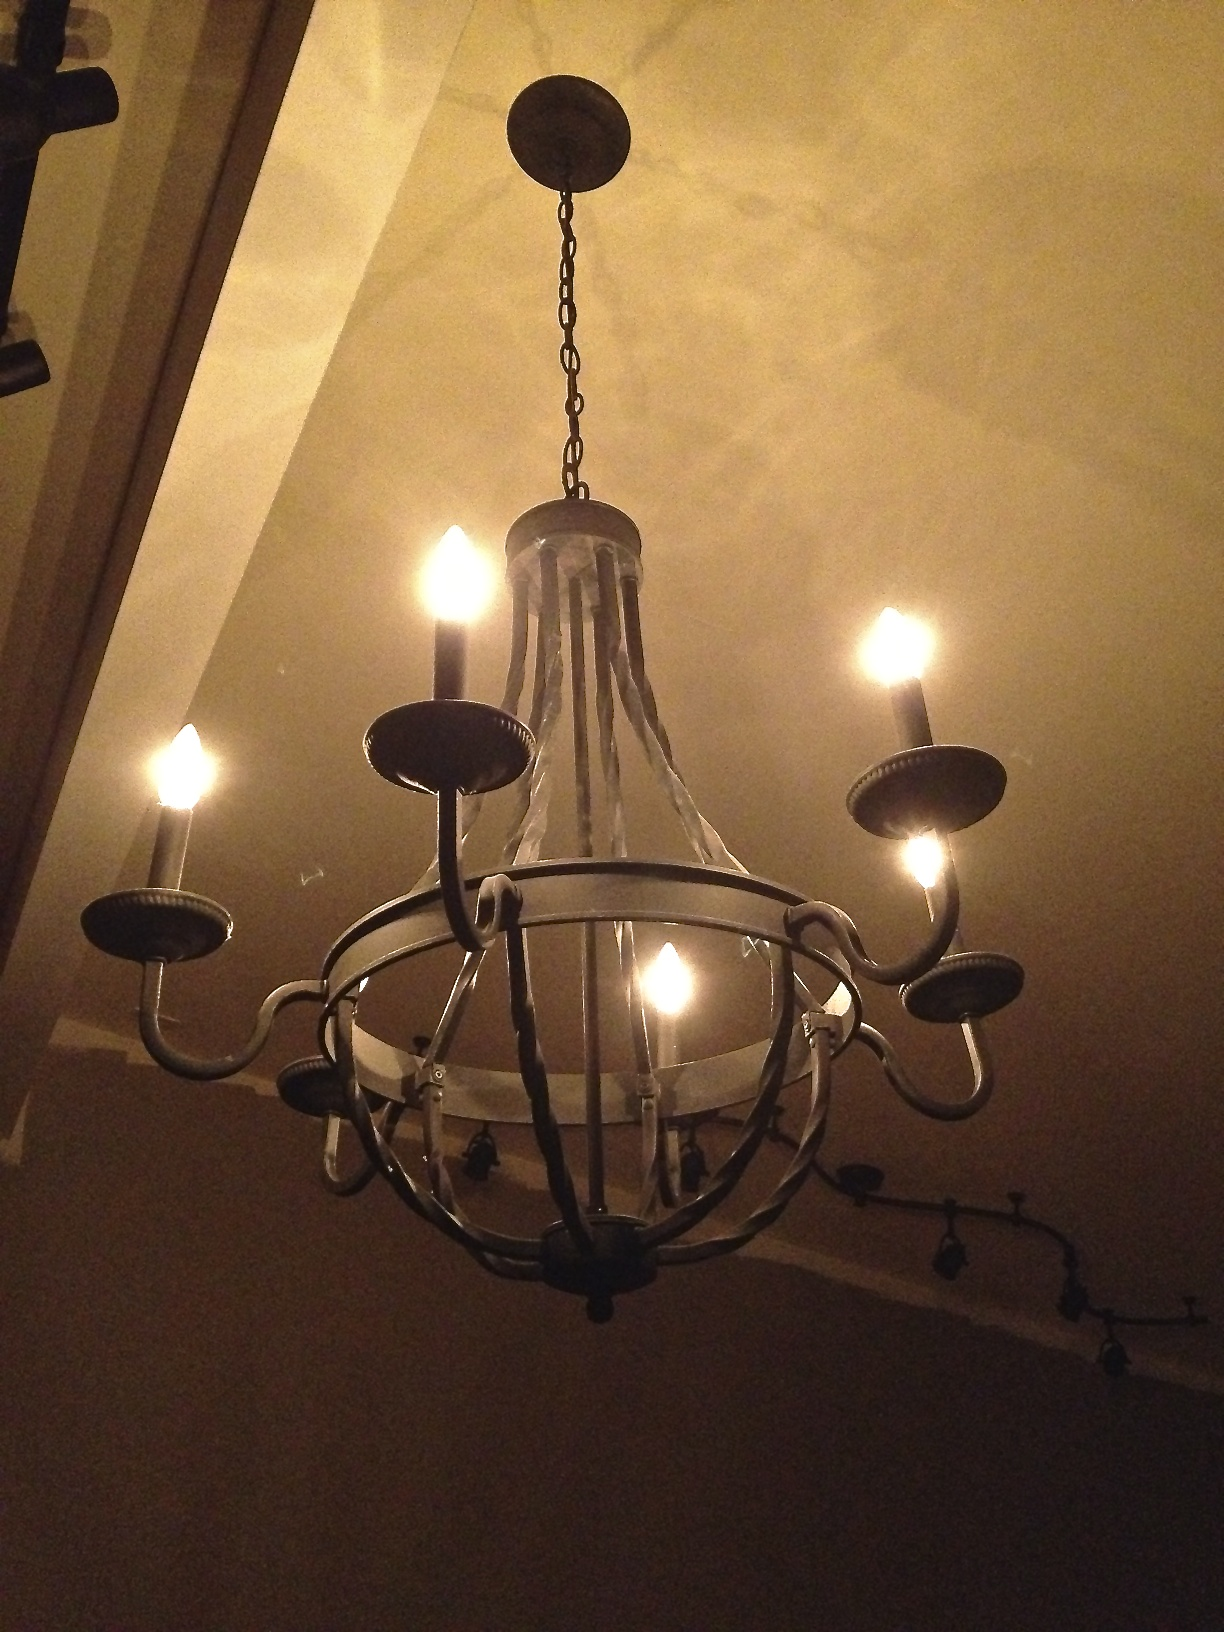 New Chandelier Install on Dimmer Switch